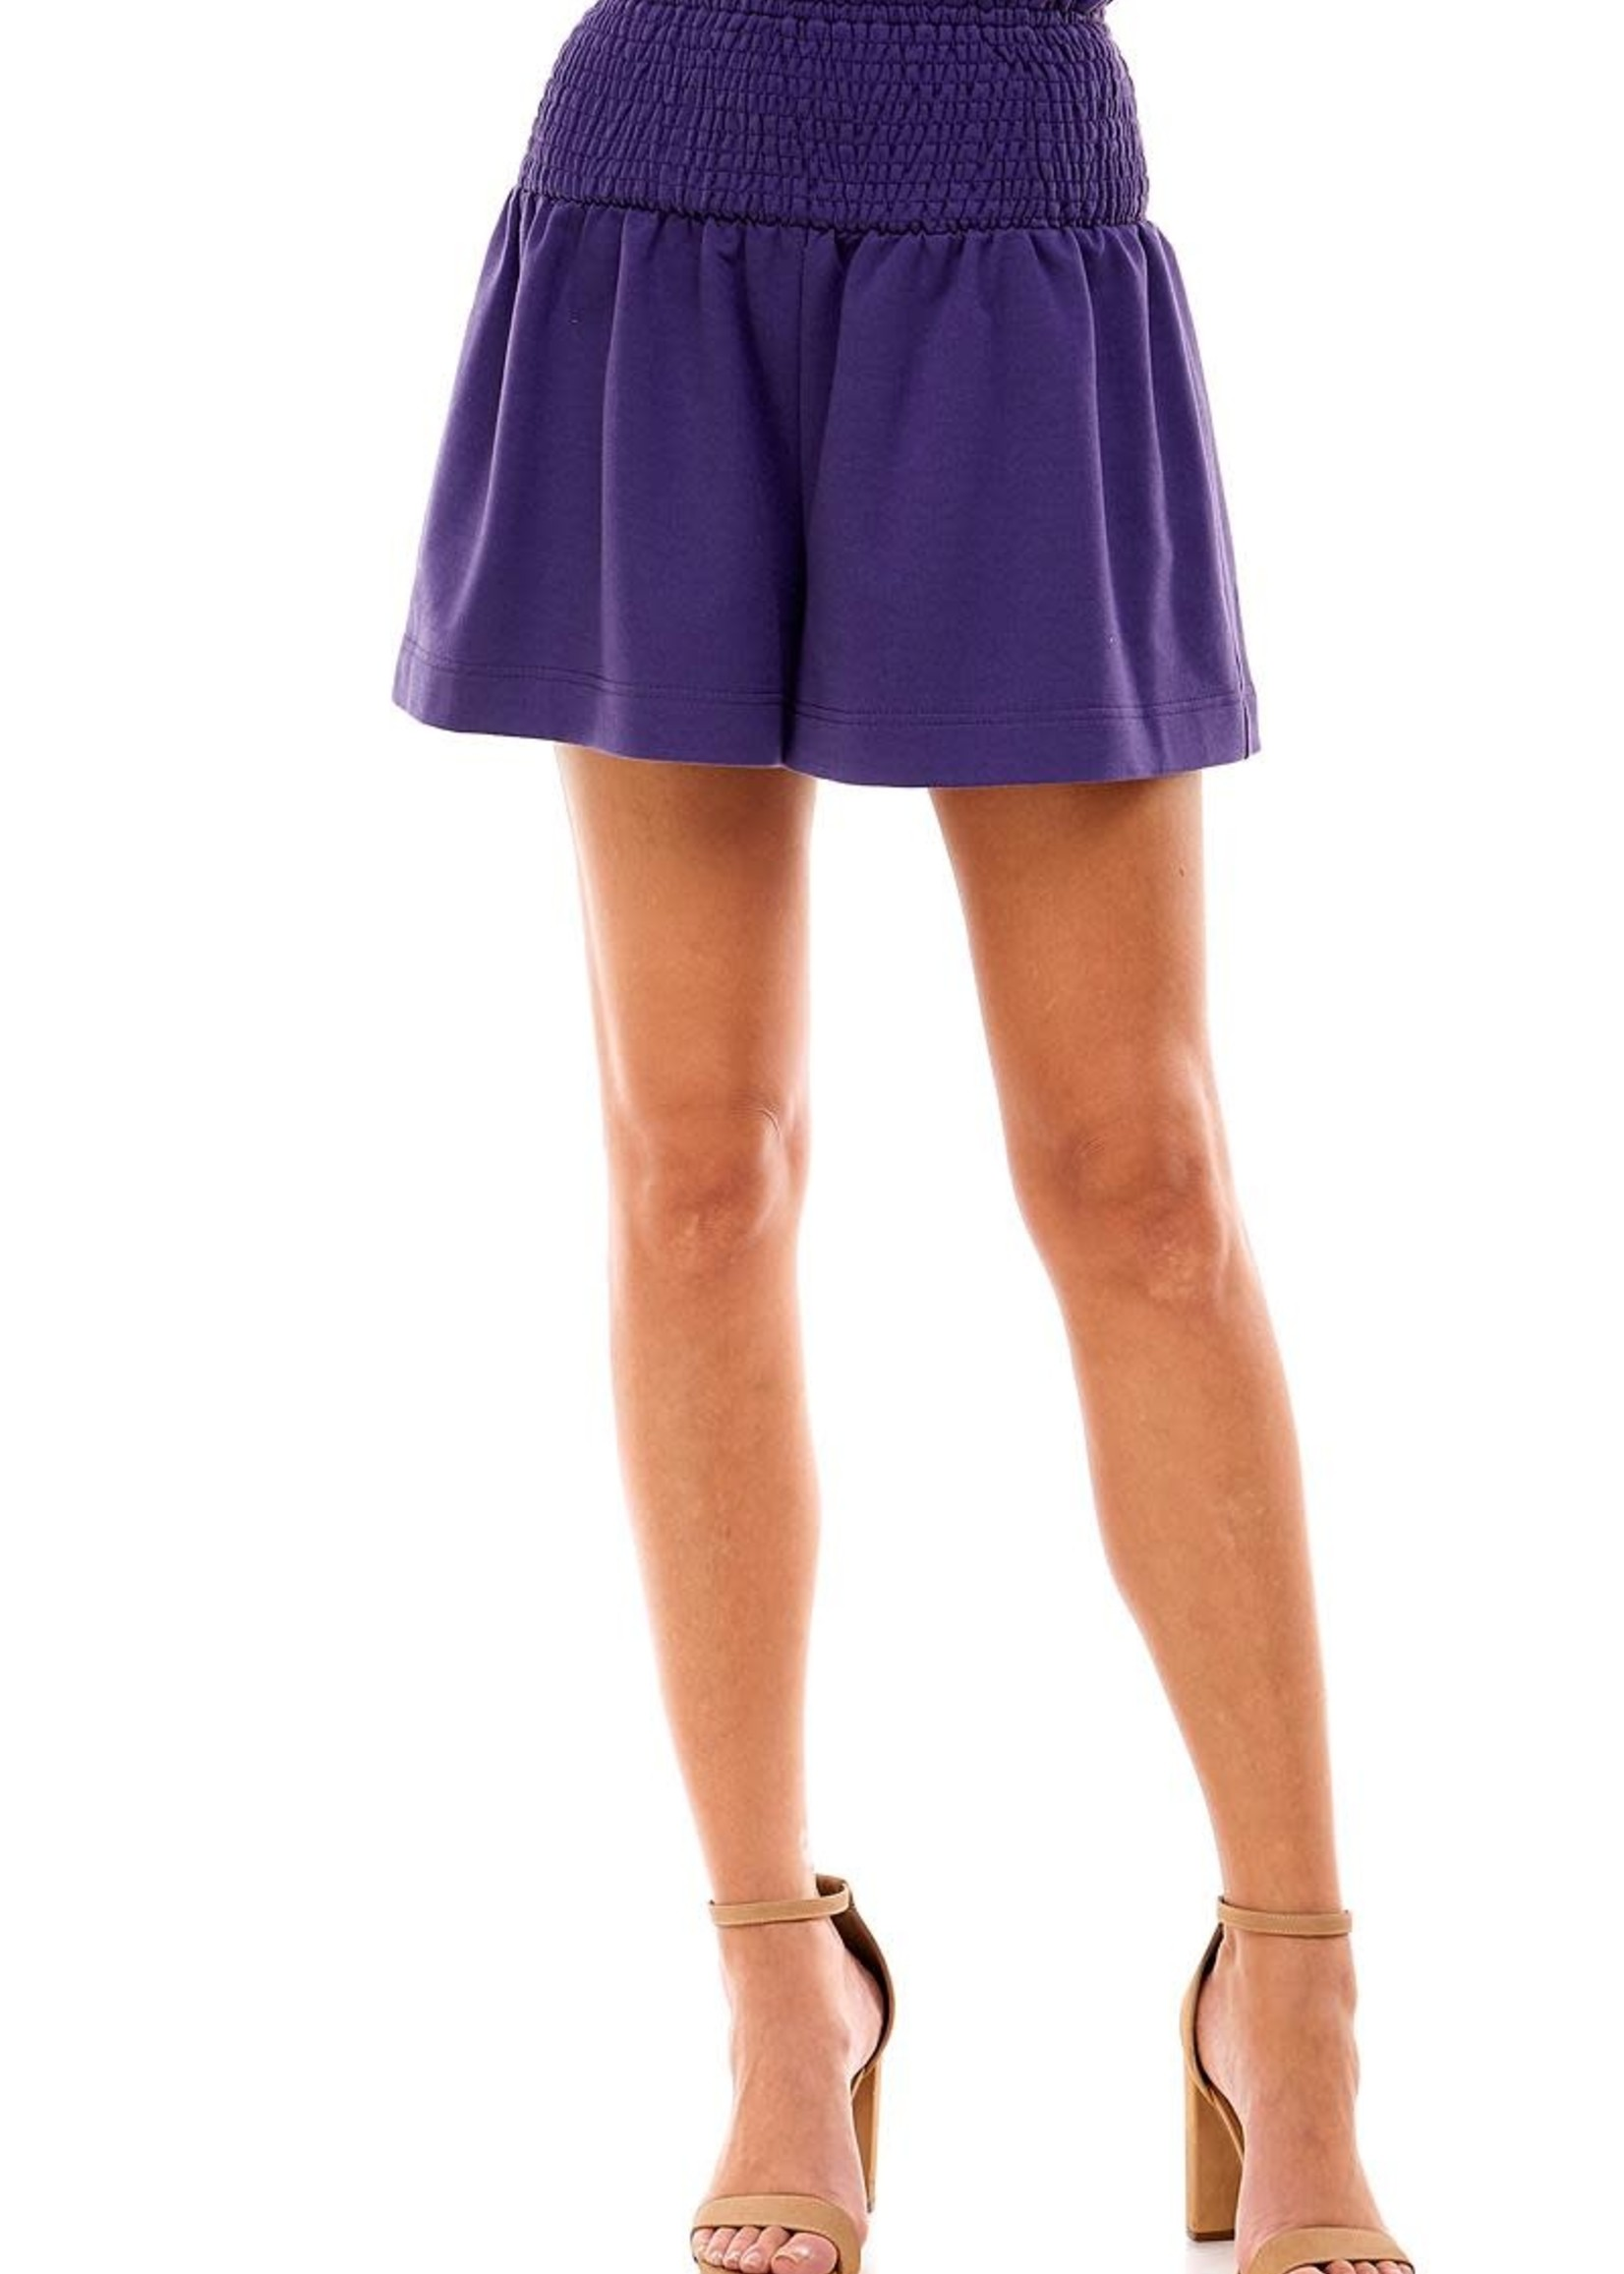 Go Team Smock Shorts ( 2 Colors)